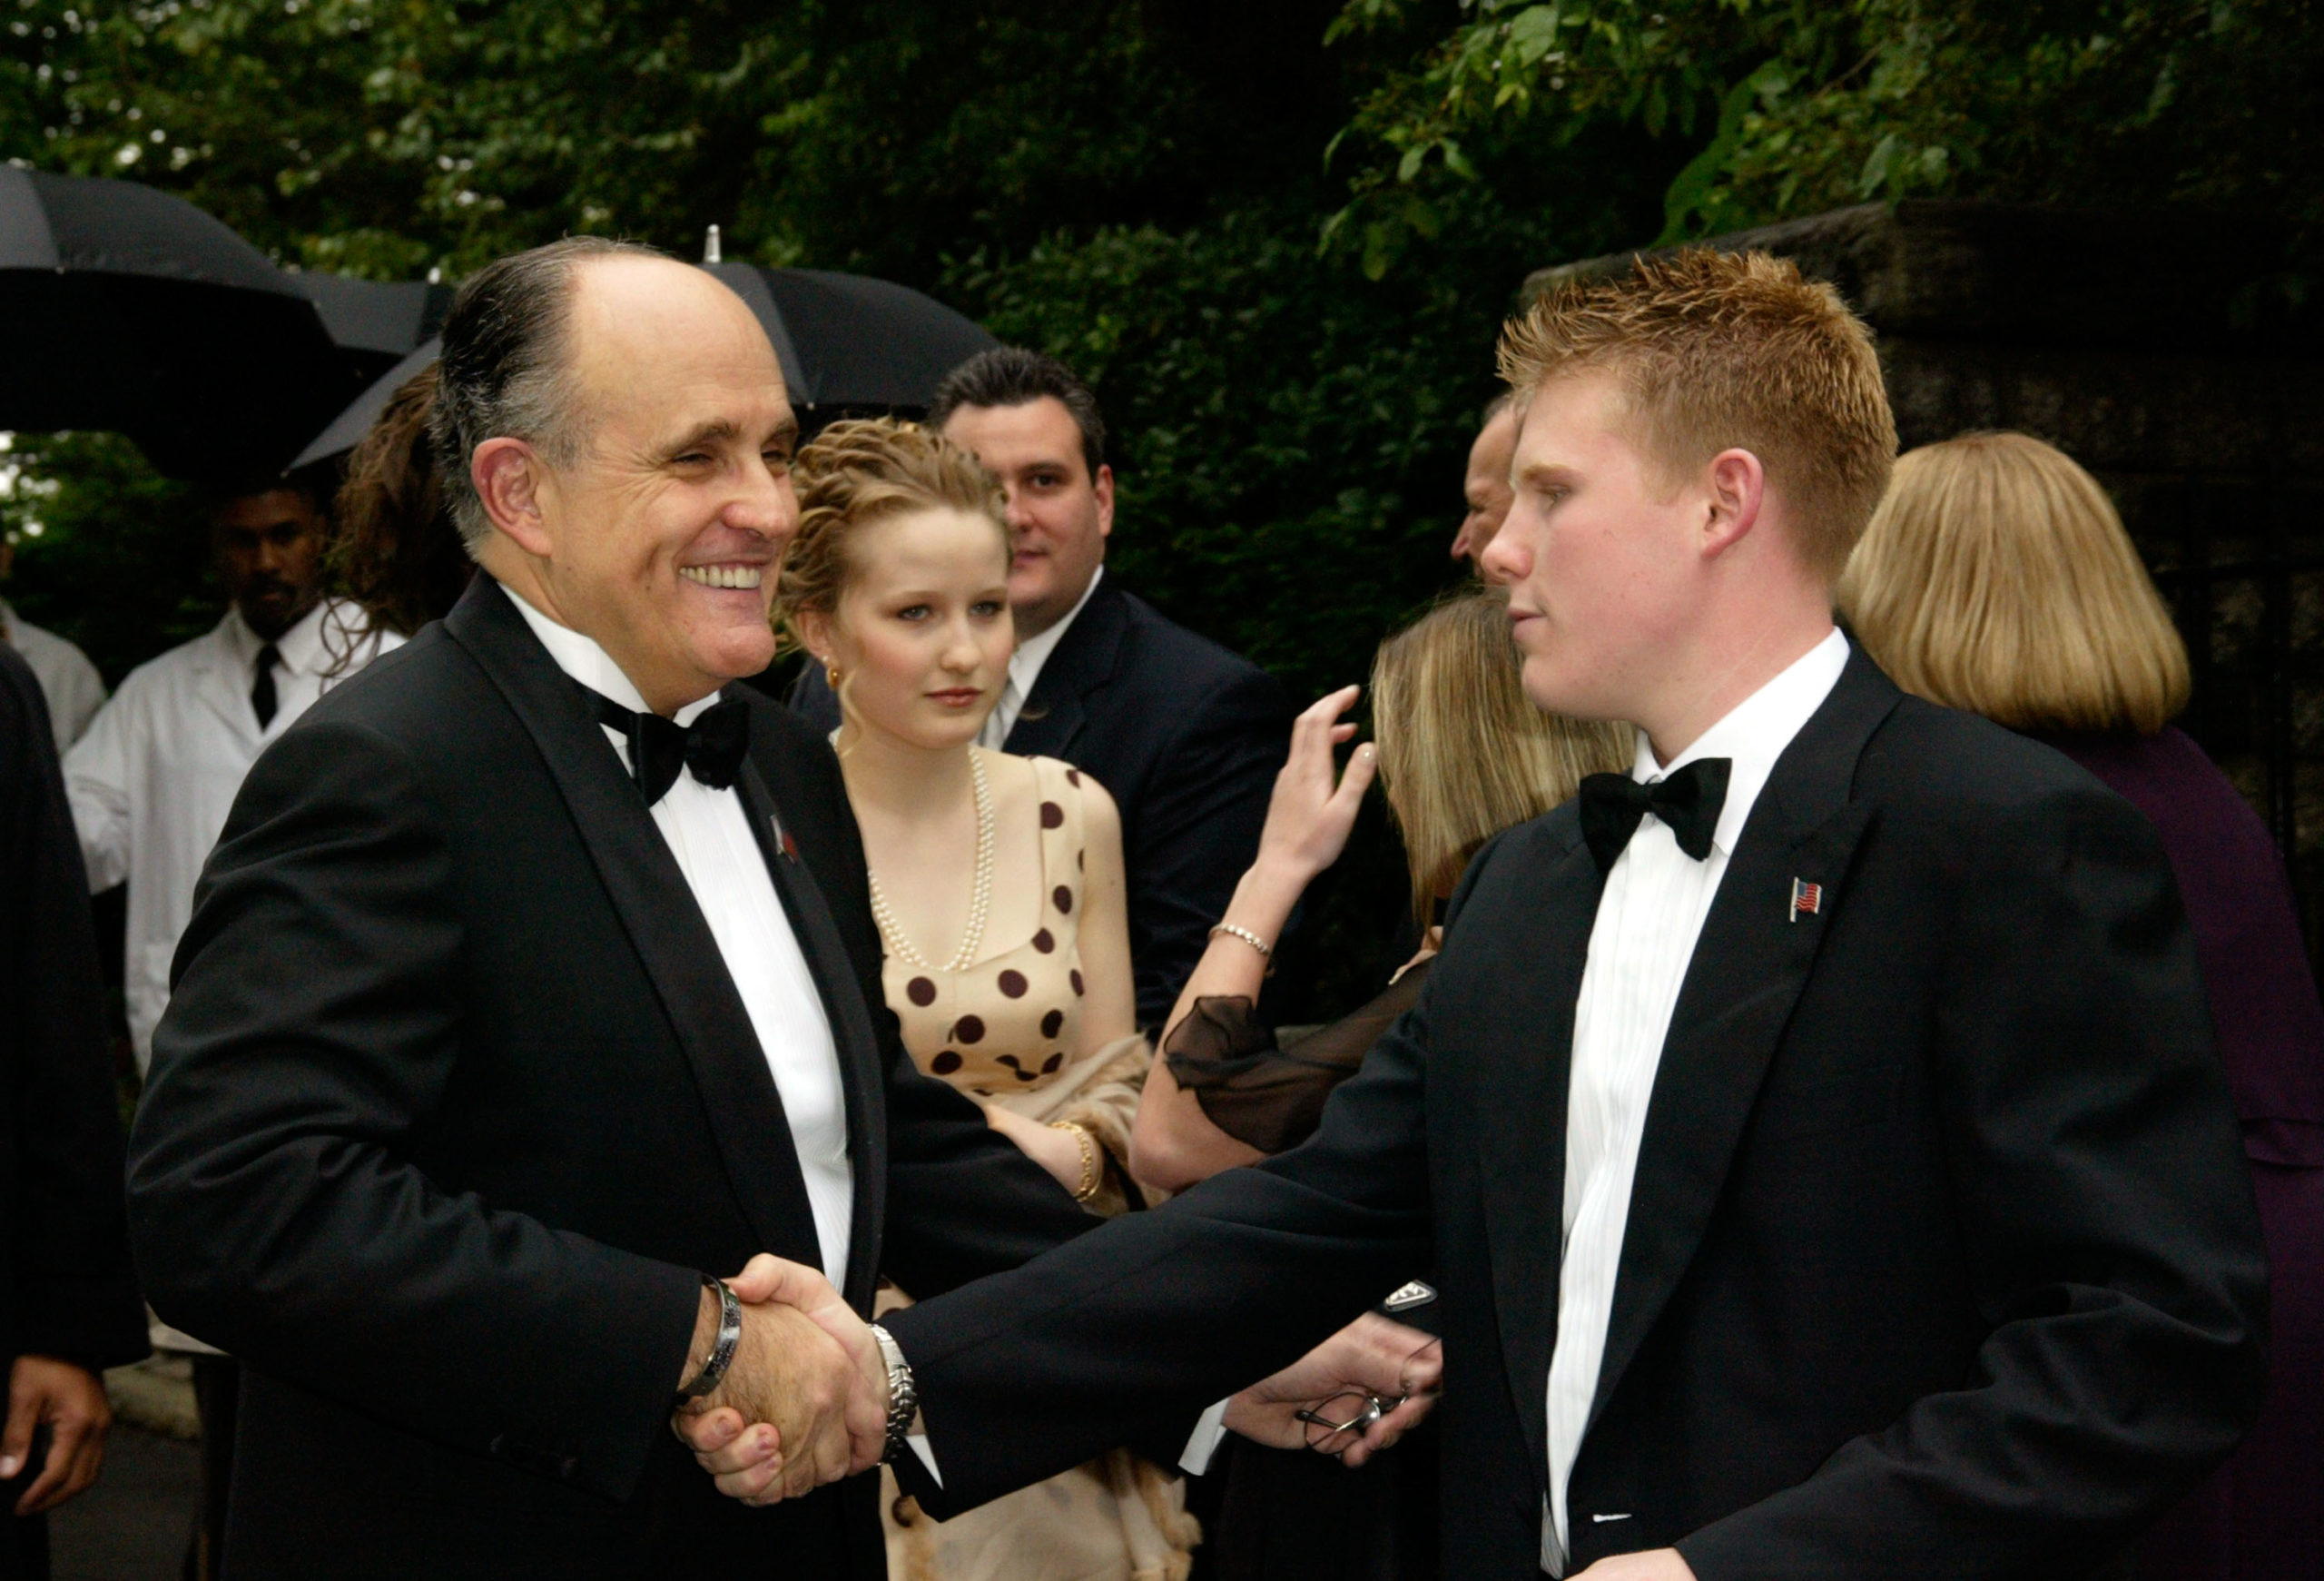 Rudolph Giuliani shakes hands with his best man/son Andrew Giuliani at the wedding of Rudolph Giuliani and Judith Nathan at Gracie Mansion May 24th , 2003 in New York City. (Matthew Peyton/Getty Images)